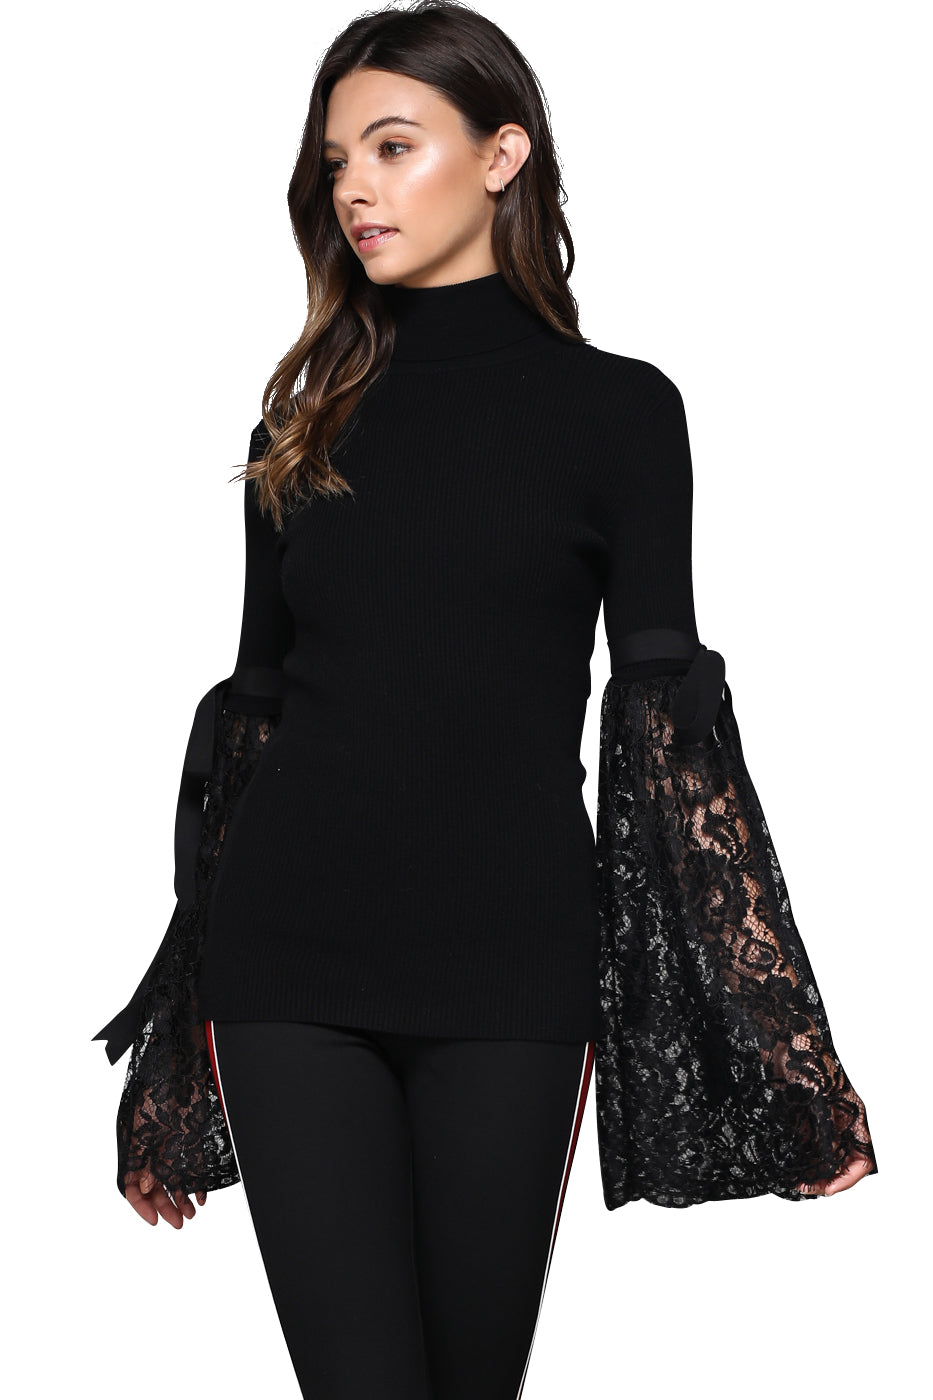 Black Knit Top with Lace Belle Sleeves